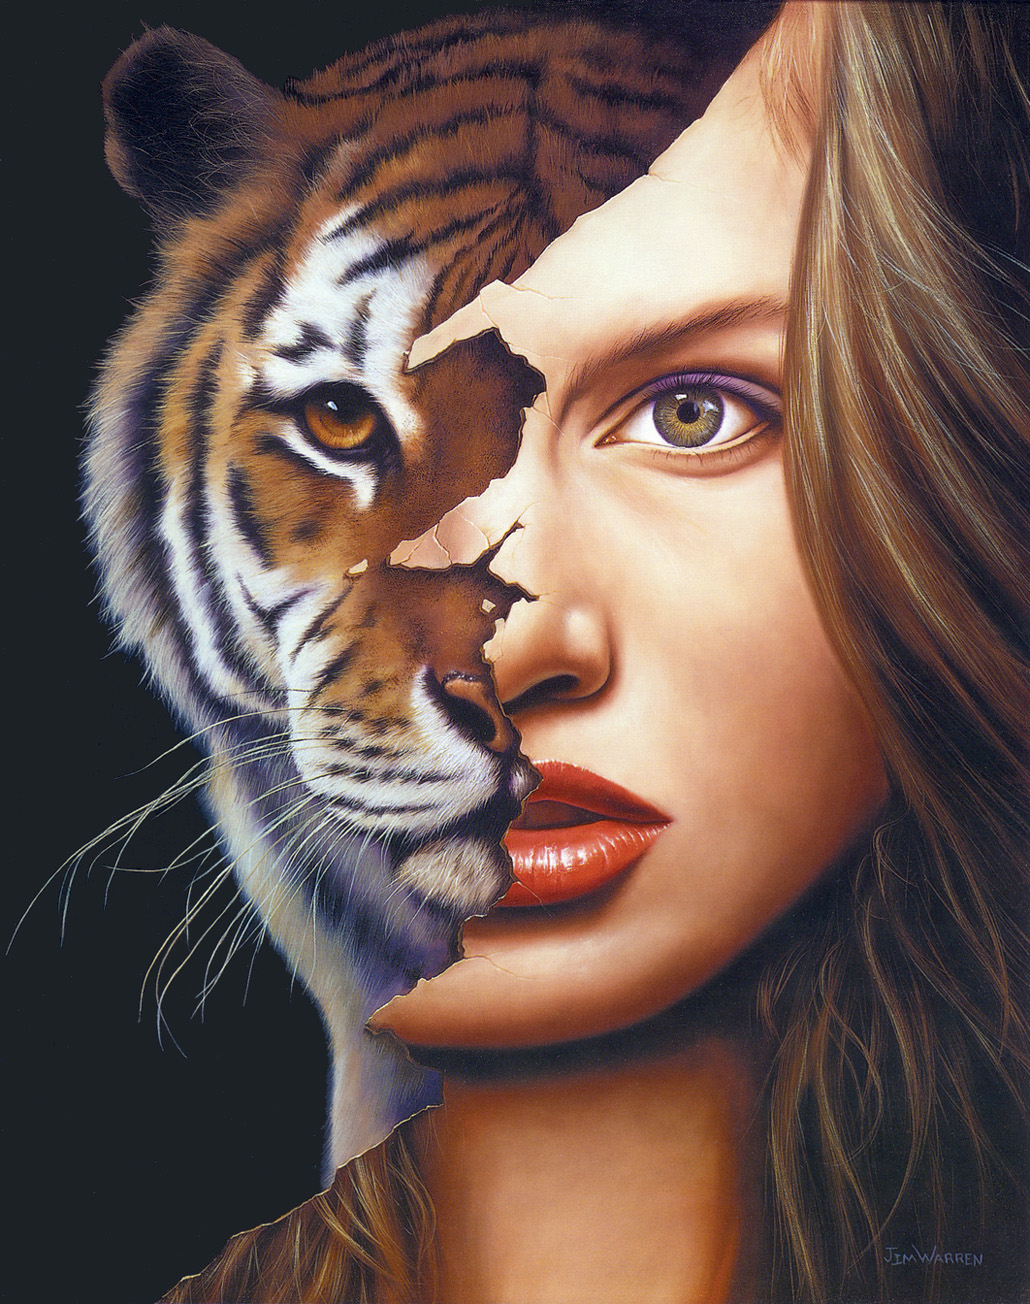 http://lcart3.narod.ru/image/fantasy/jim_warren/Jim_Warren_The_Tiger_Within.jpg